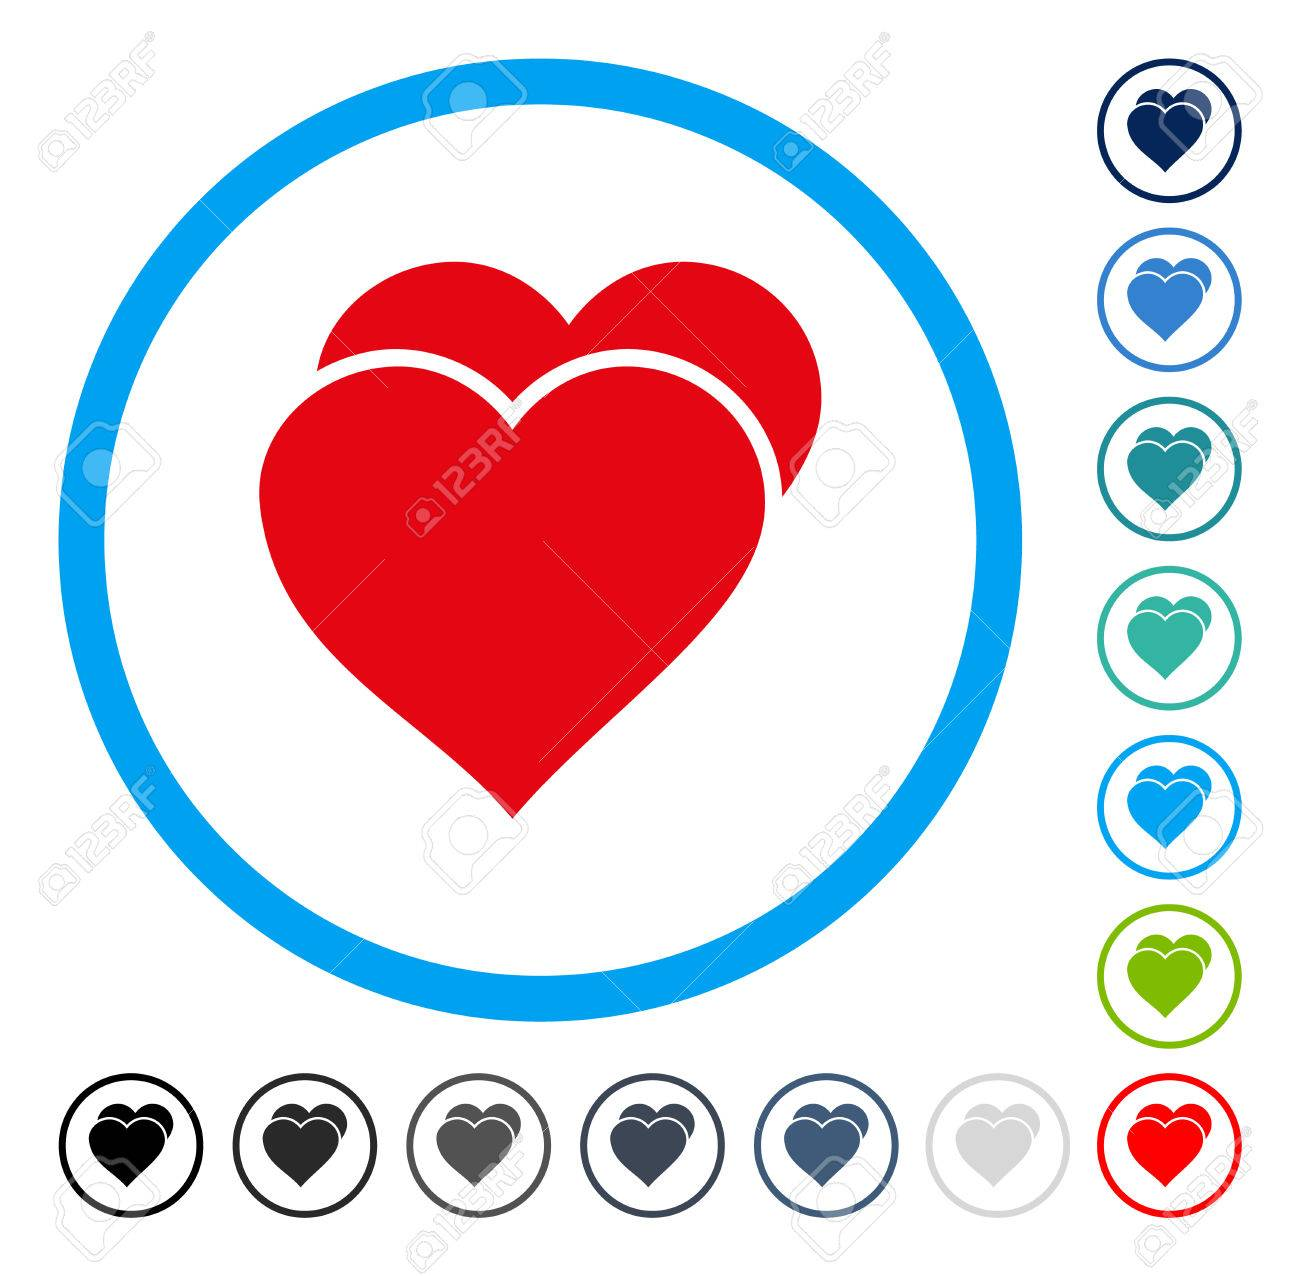 Love hearts icon inside circle frame vector illustration style love hearts icon inside circle frame vector illustration style is a flat iconic symbol in buycottarizona